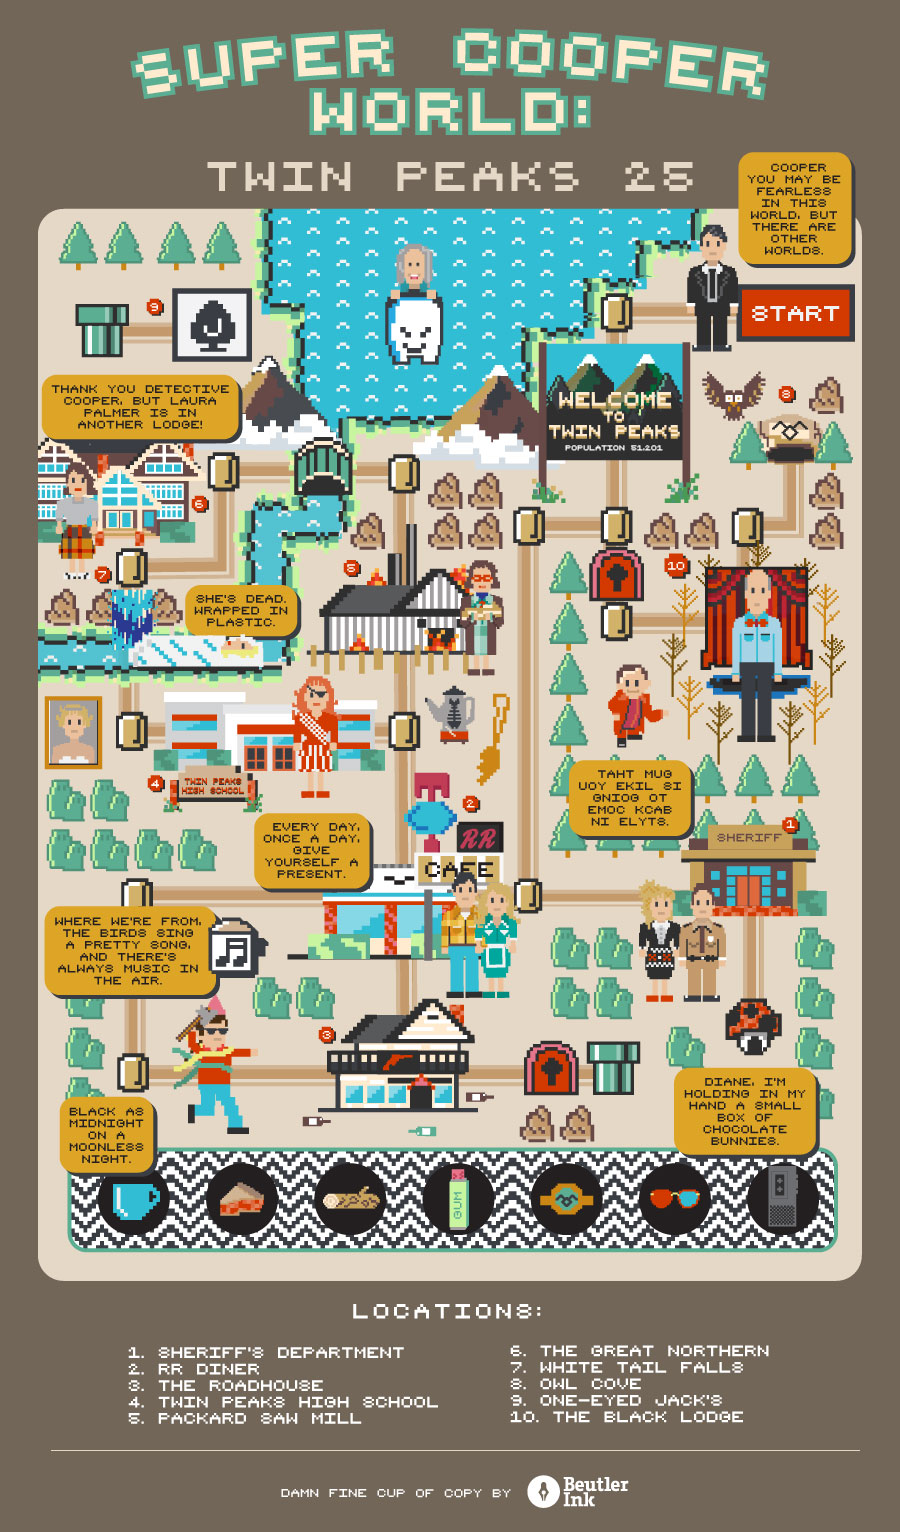 twinpeaks_infographic_design-v3 (1)